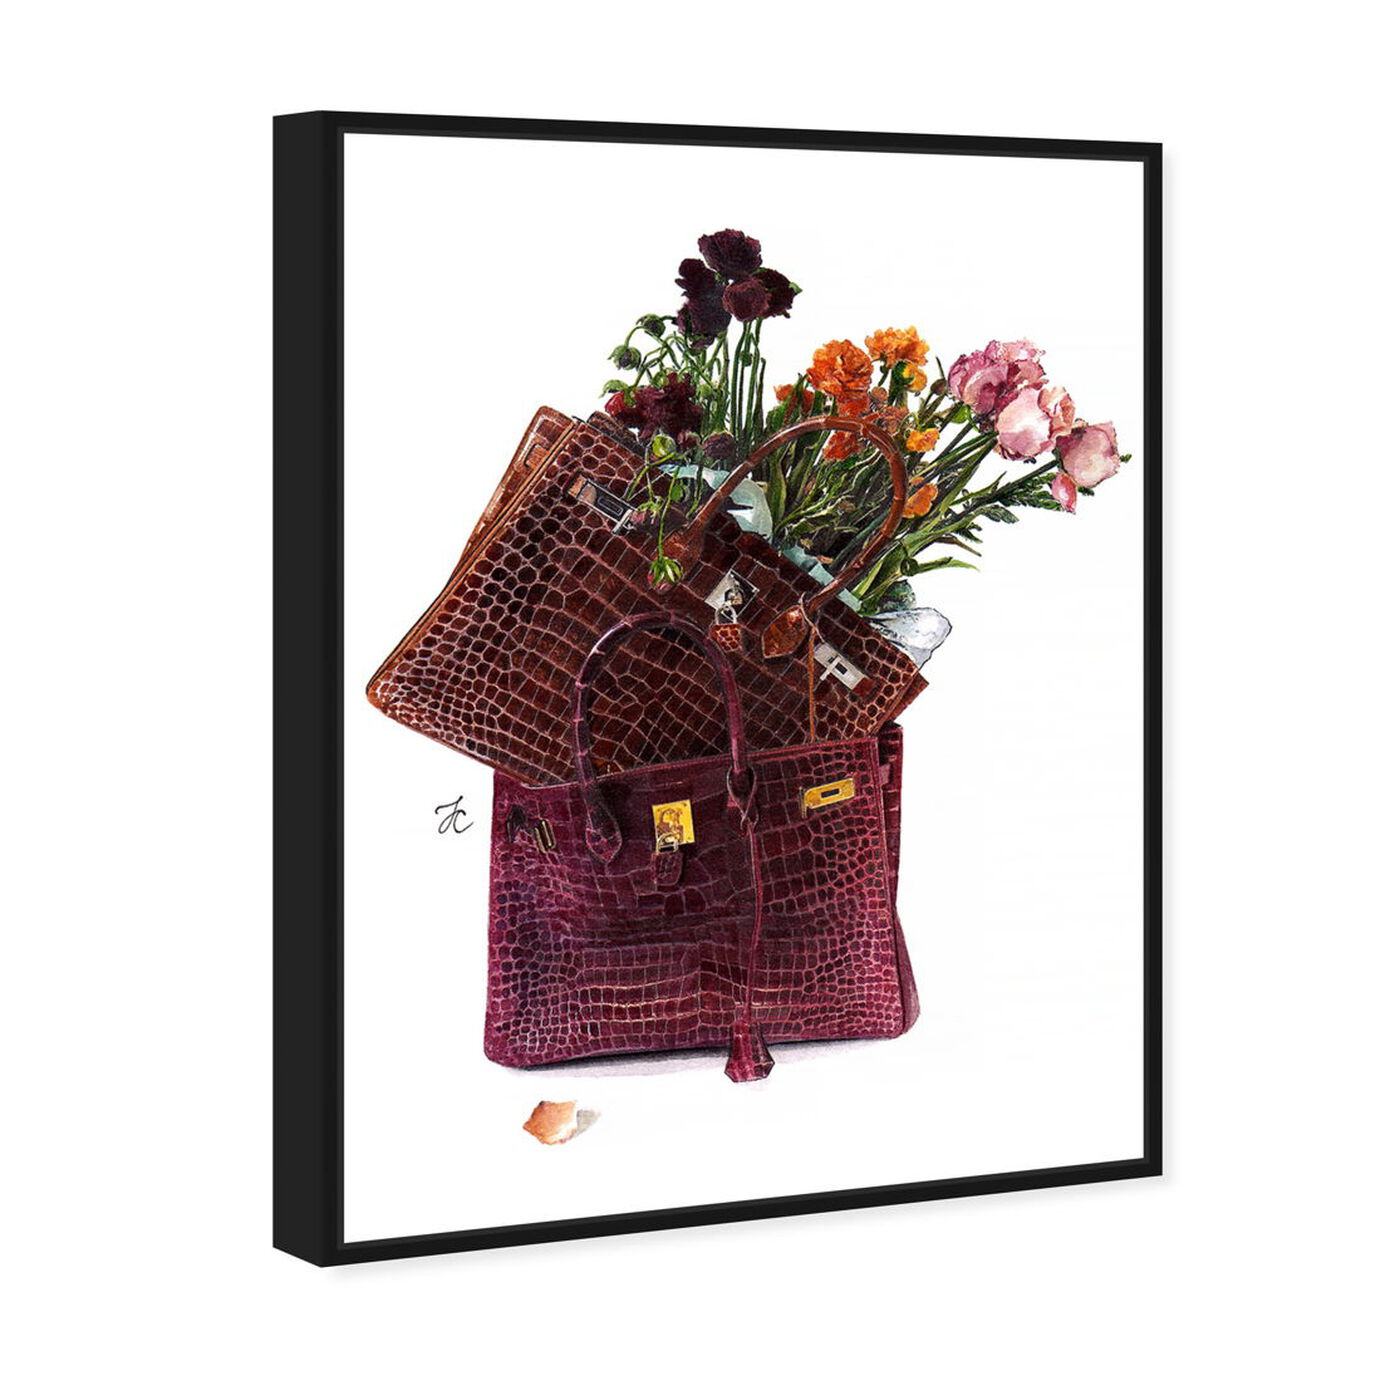 Angled view of Doll Memories - Flowers featuring fashion and glam and handbags art.